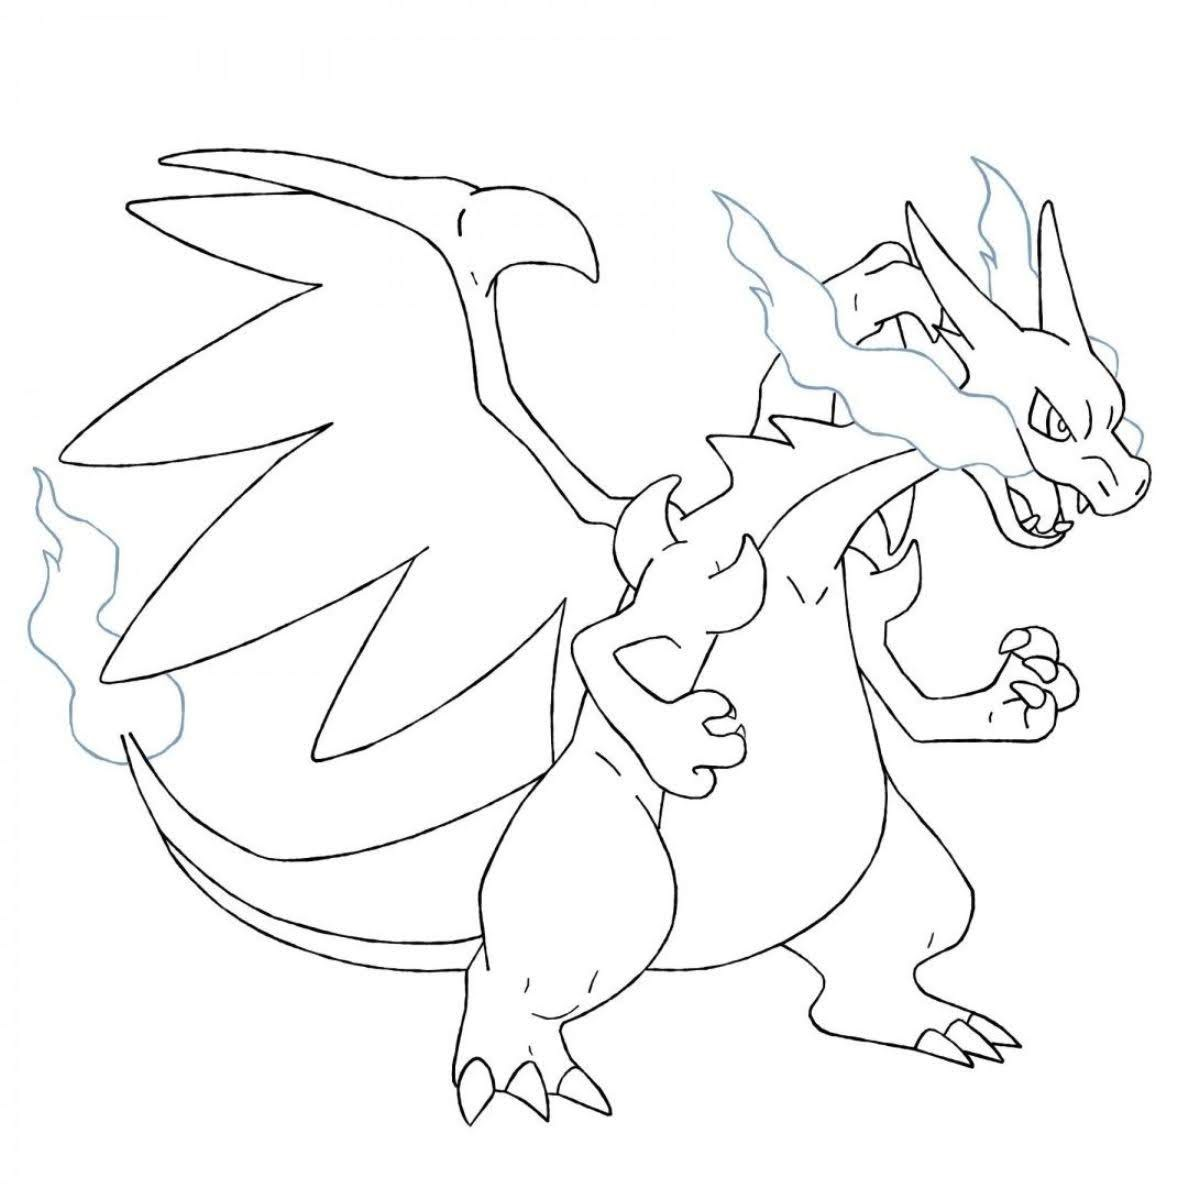 Printable Charizard Coloring Pages for Free - Free Pokemon